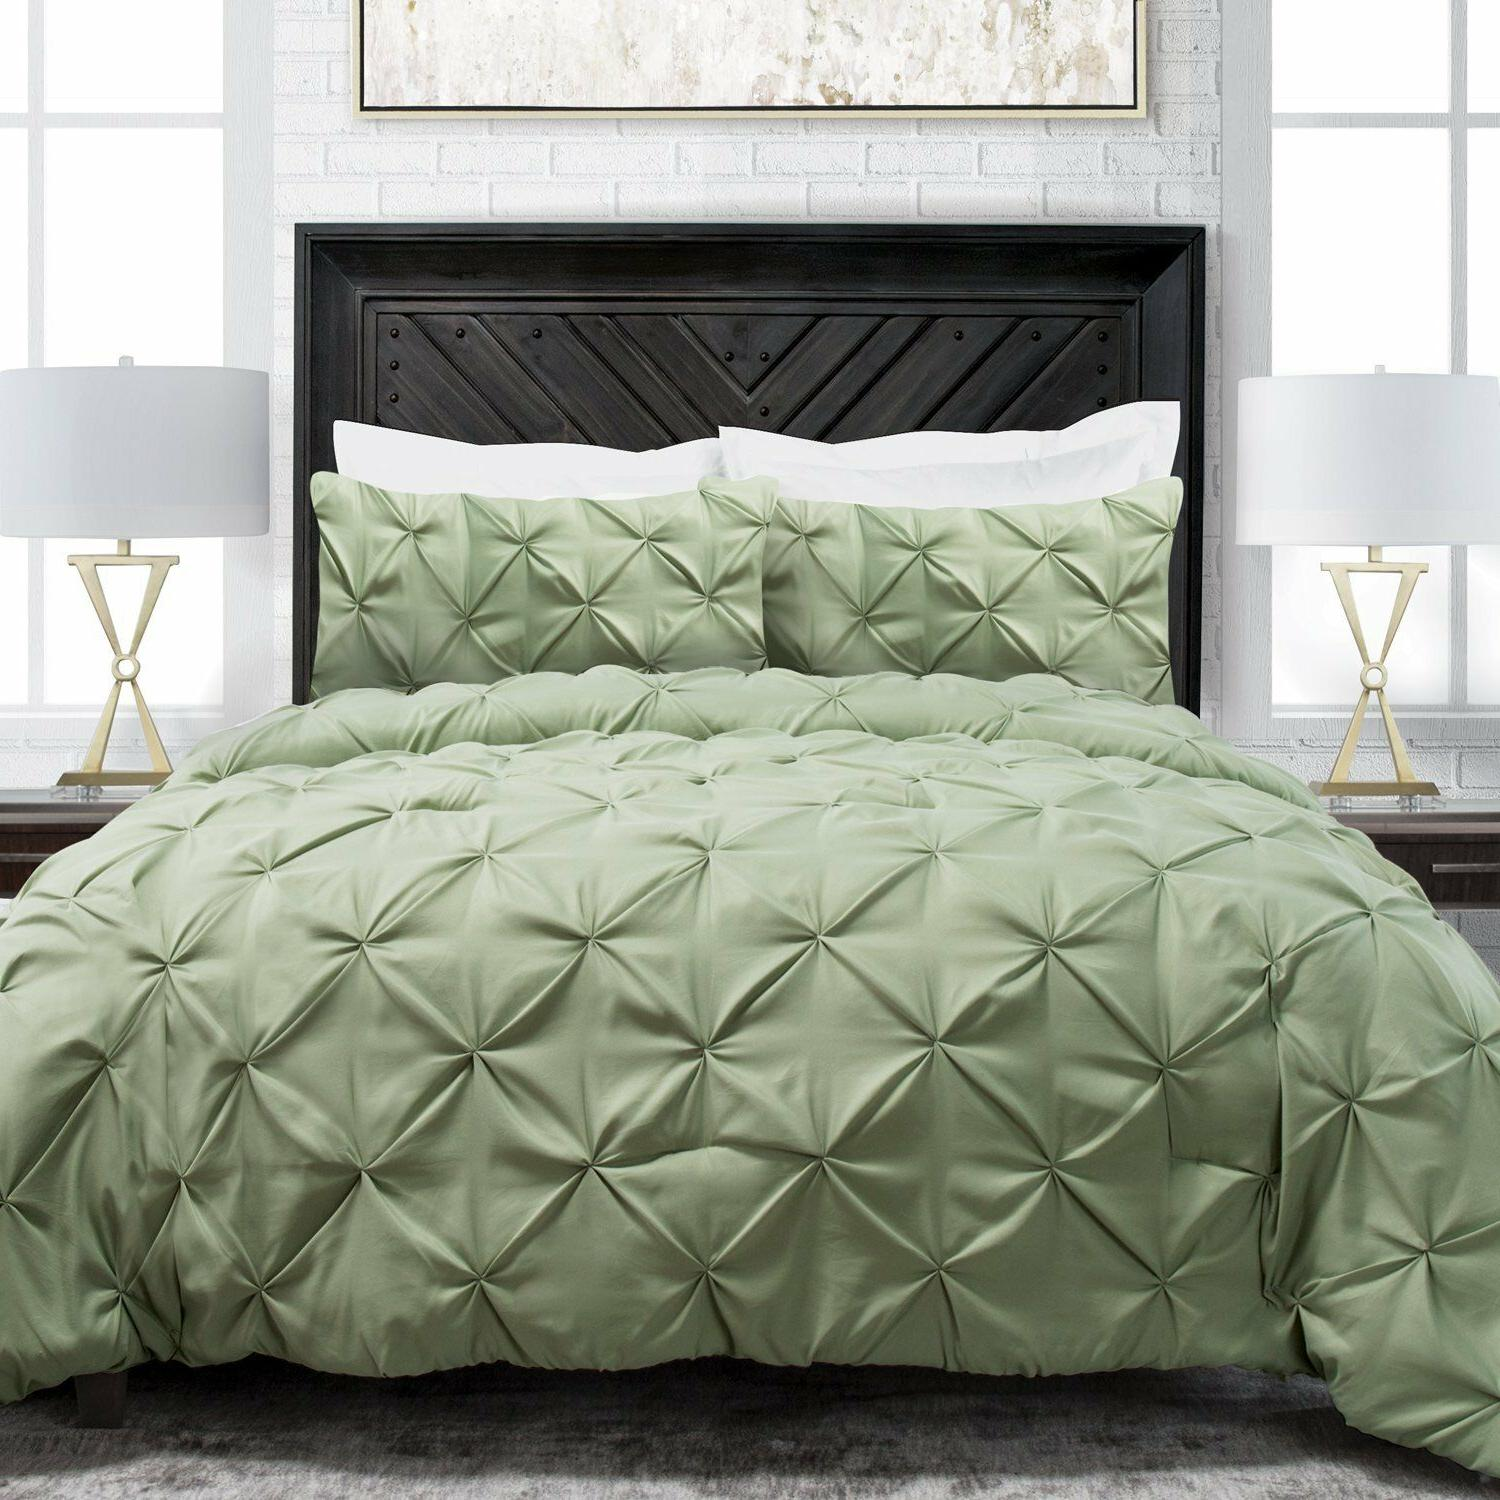 Sleep Restoration Pinch Pleat 3-Piece Luxury Goose Down Alte